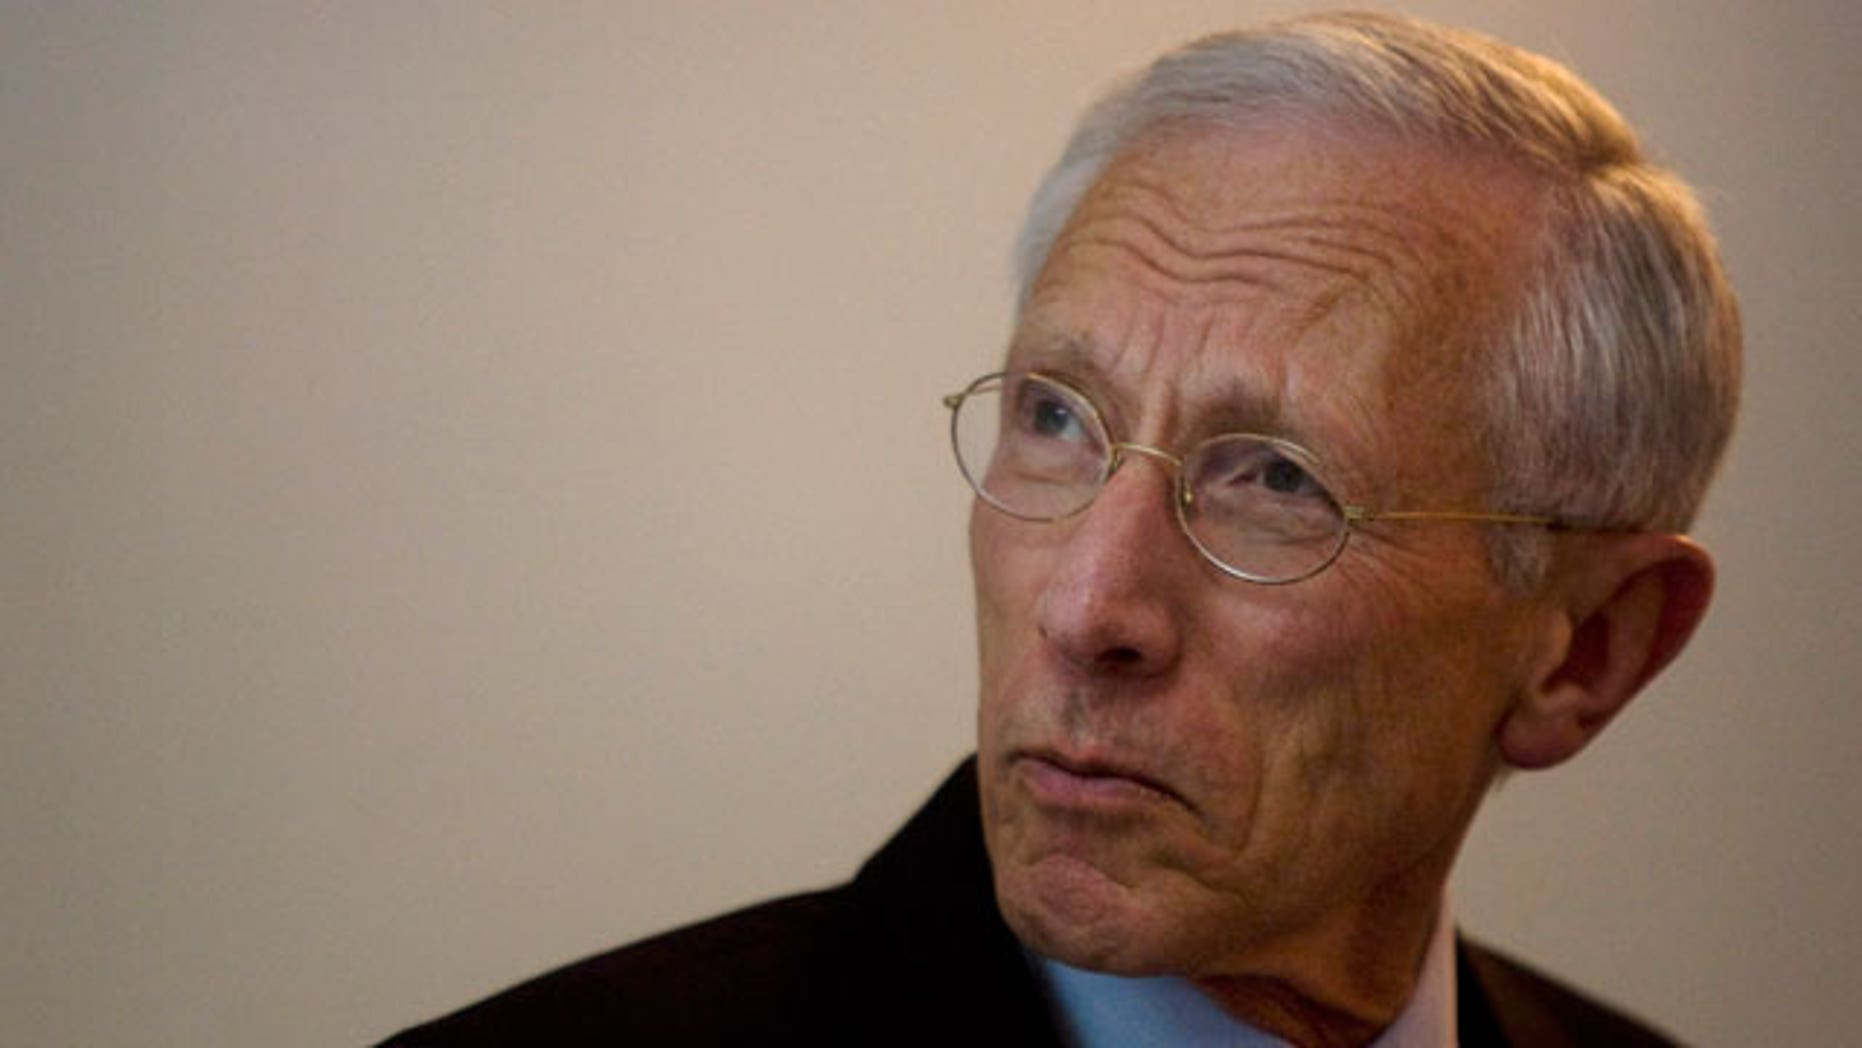 In this file photo taken on April 21, 2010, Governor of the Central Bank of Israel, Stanley Fischer, speaks during a press conference in Jerusalem. Fischer is interested in the top job at the International Monetary Fund and has received a number of phone calls in recent days from around the world encouraging him to apply, a person familiar with the banker's thinking told The Associated Press on Sunday, May 29, 2011.